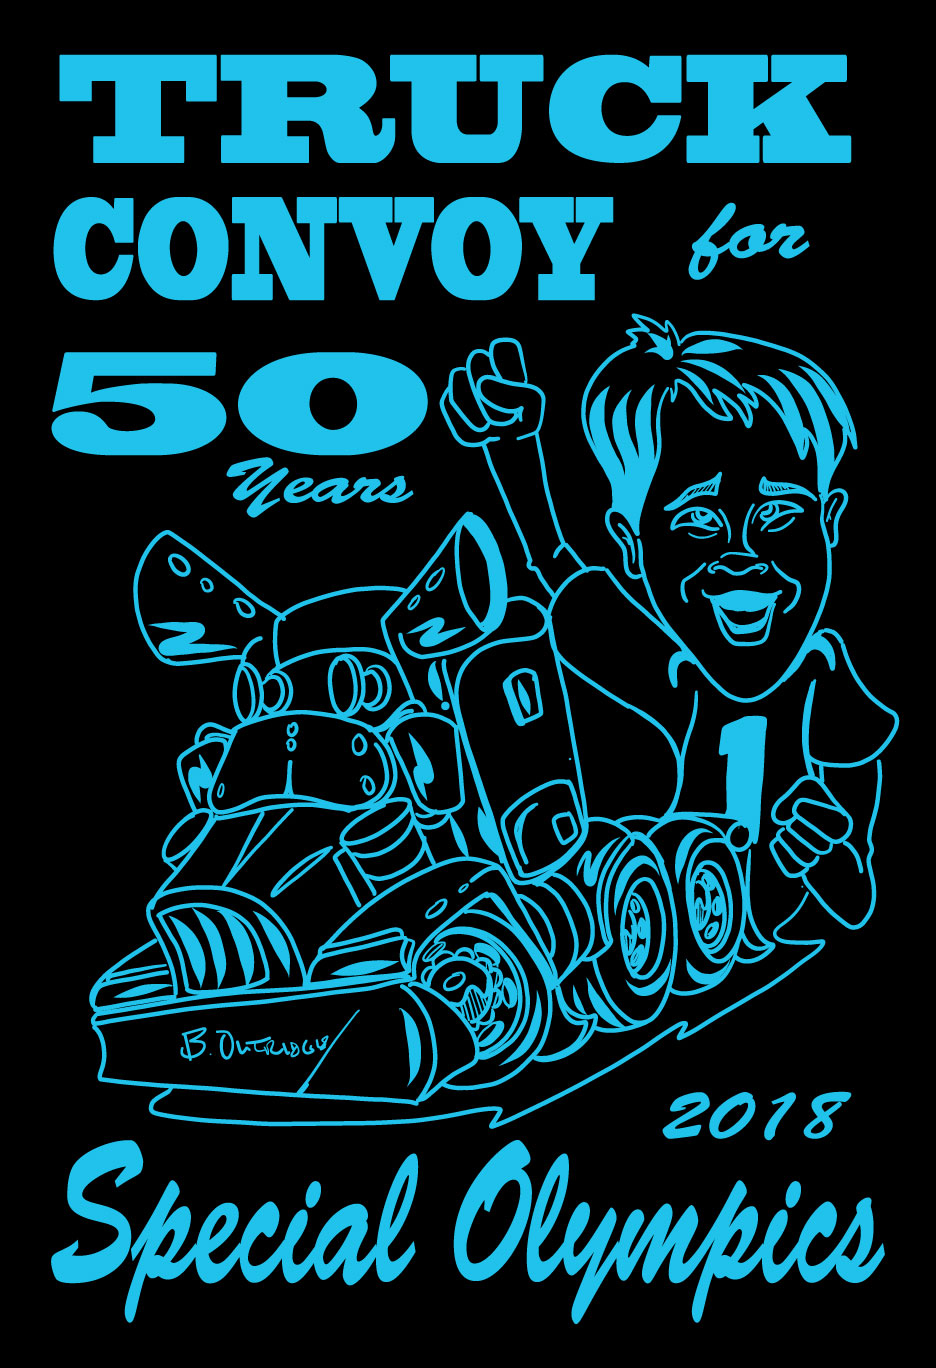 Truck Convoy for Special Olympics 2018 T-Shirt Design